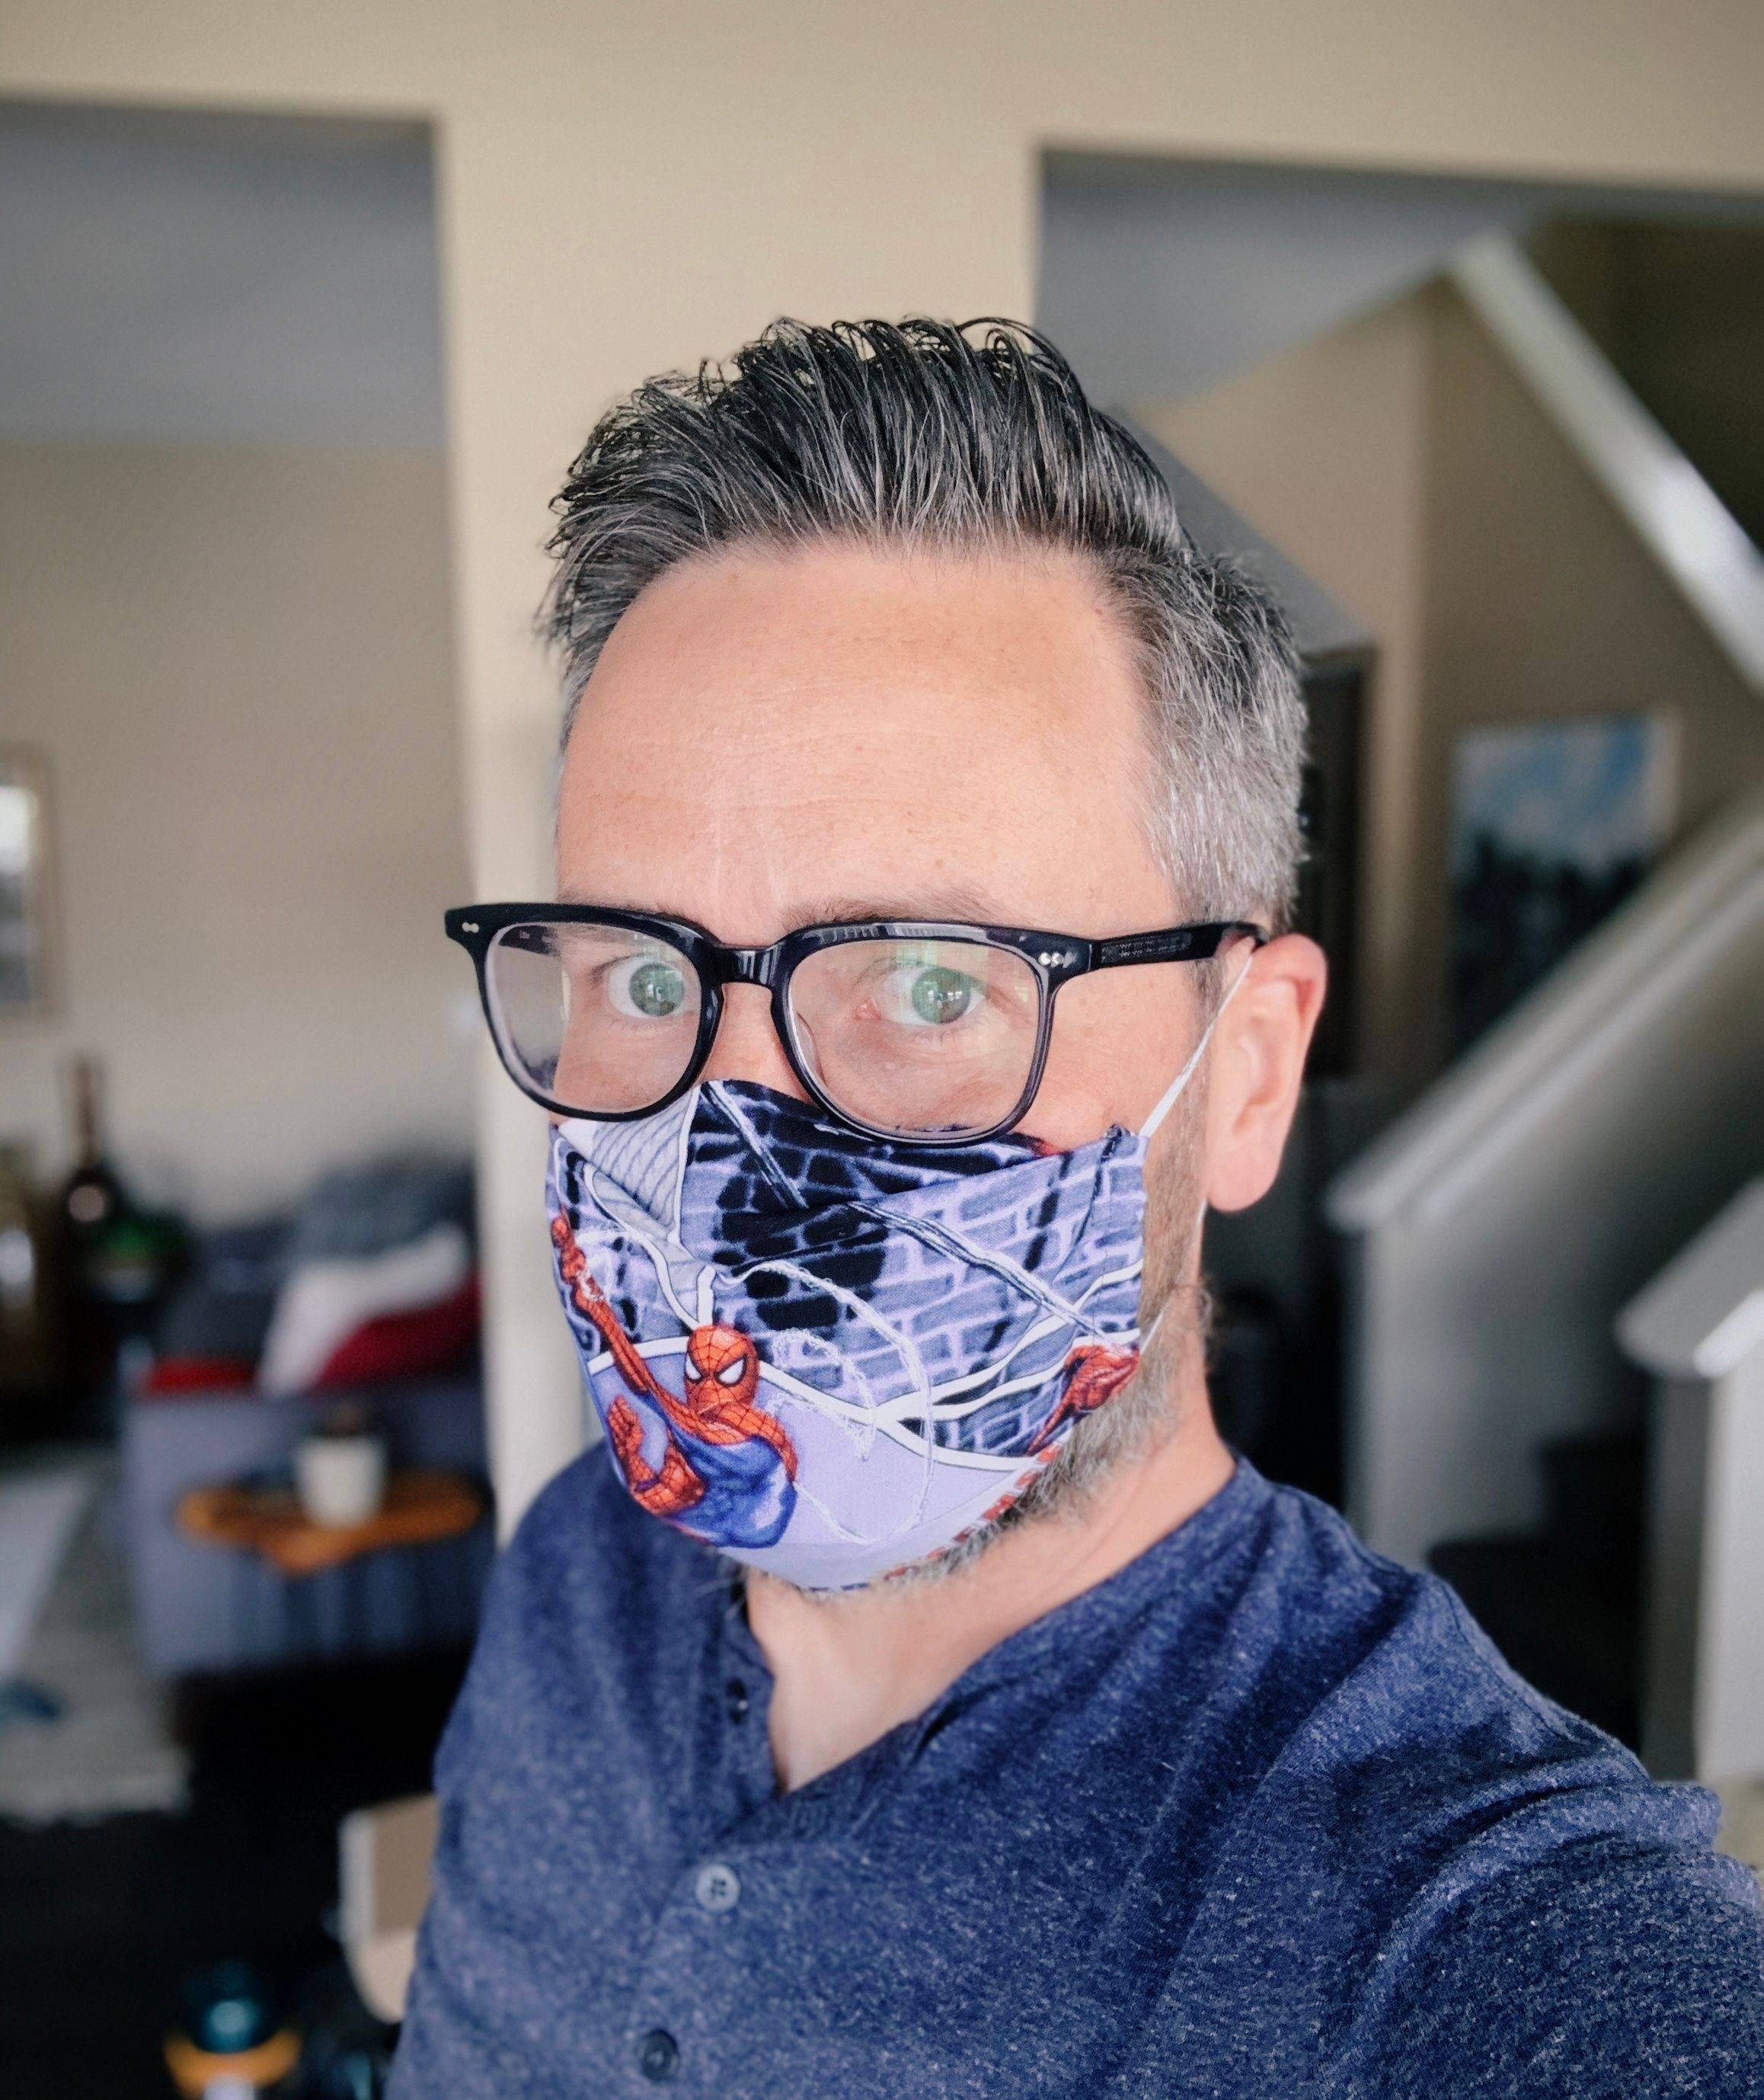 awesome spider-man mask